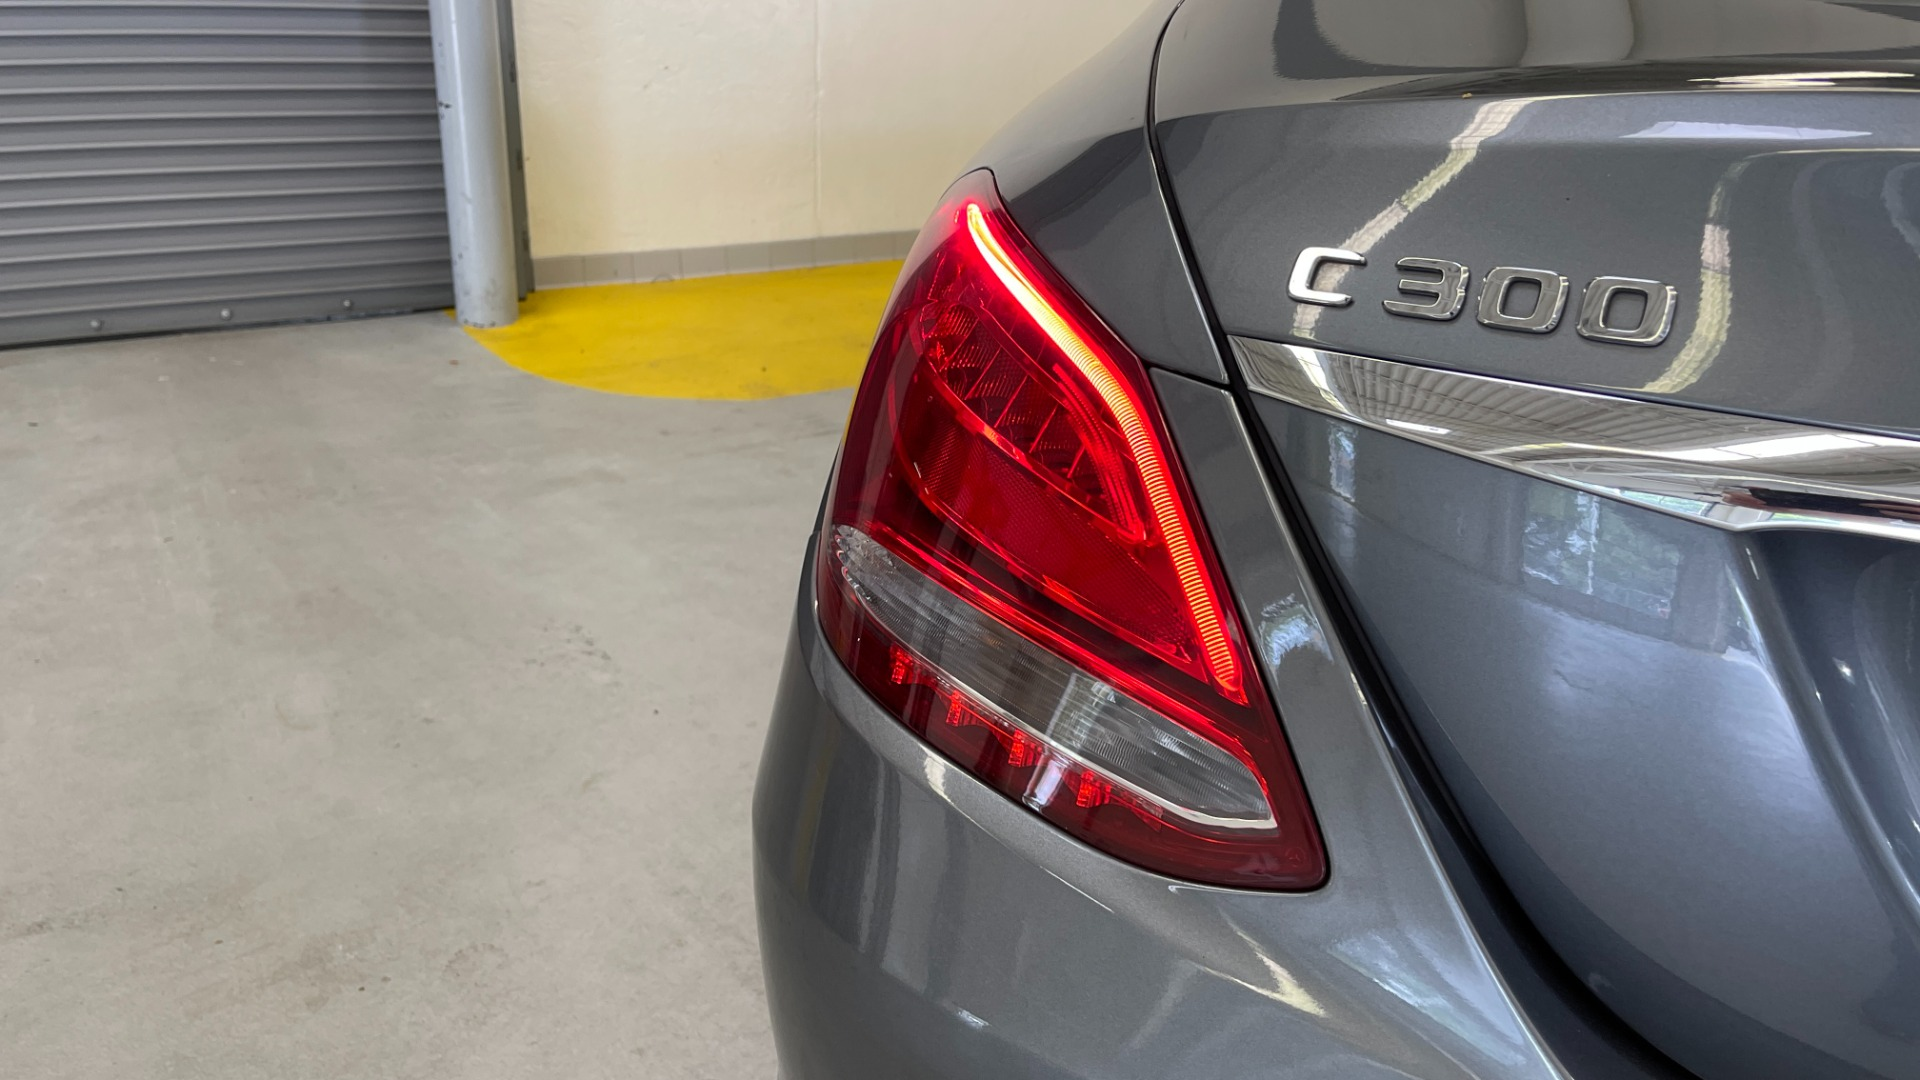 Used 2018 Mercedes-Benz C-CLASS C 300 PREMIUM / SUNROOF / APPLE CARPLAY / HTD STS / REARVIEW for sale $31,795 at Formula Imports in Charlotte NC 28227 17